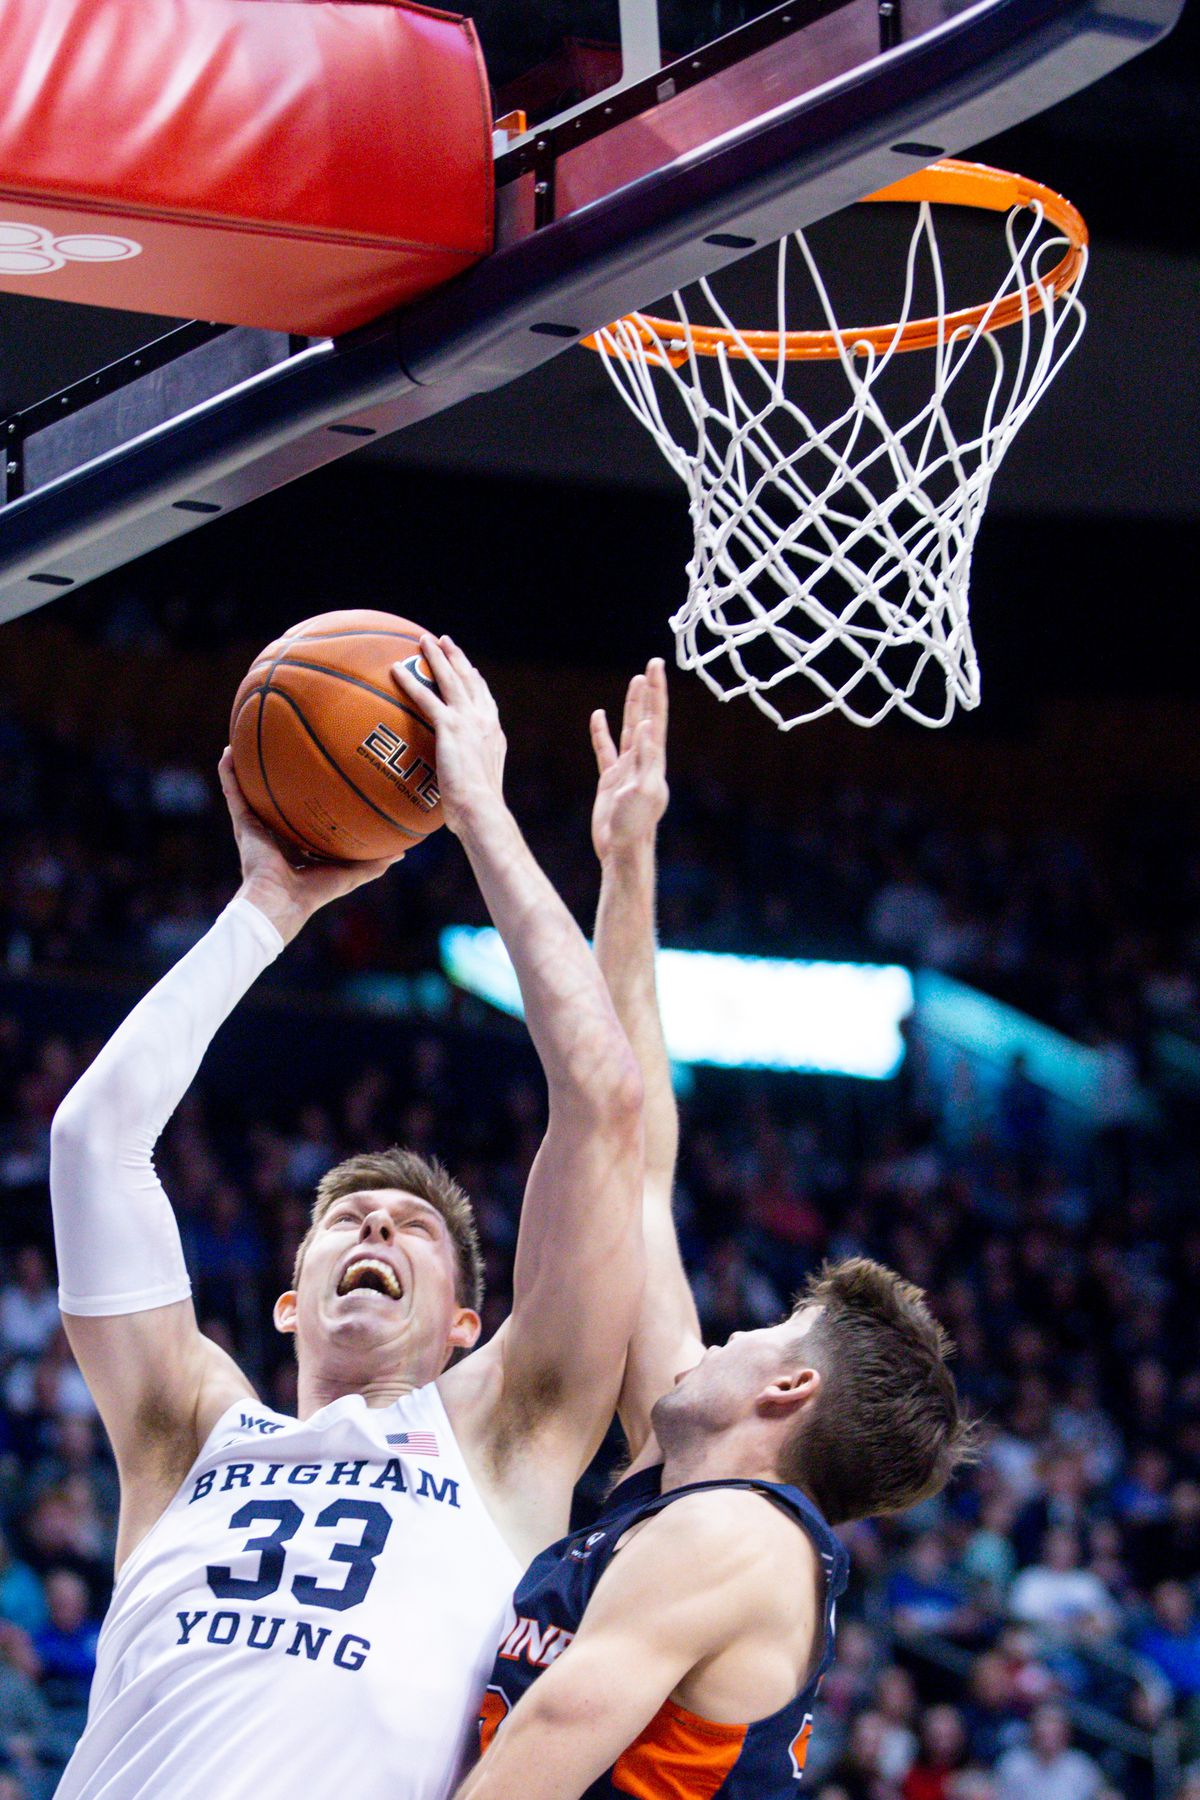 Brigham Young Cougars forward Dalton Nixon (33) jumps to the basket while Pepperdine Waves guard Skylar Chavez (33) attempts to block him in Provo on Thursday, Jan. 30, 2020. BYU won 107-80.